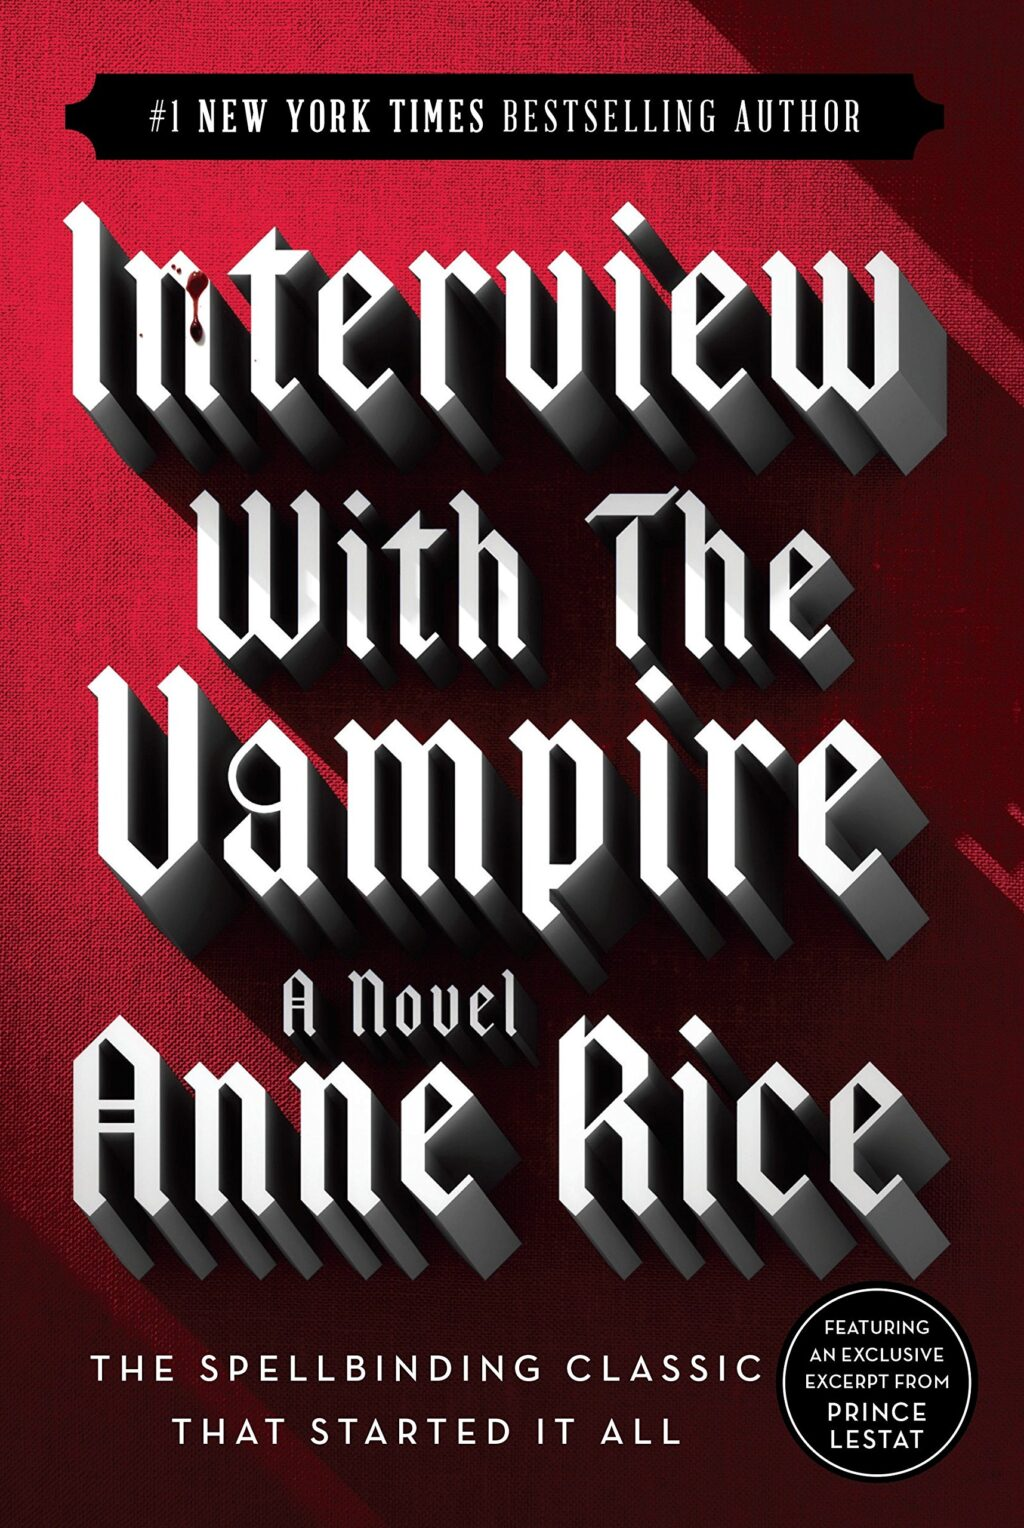 1024x1528 Interview Book - Coming Up INTERVIEW WITH THE VAMPIRE Series Beget a New Director